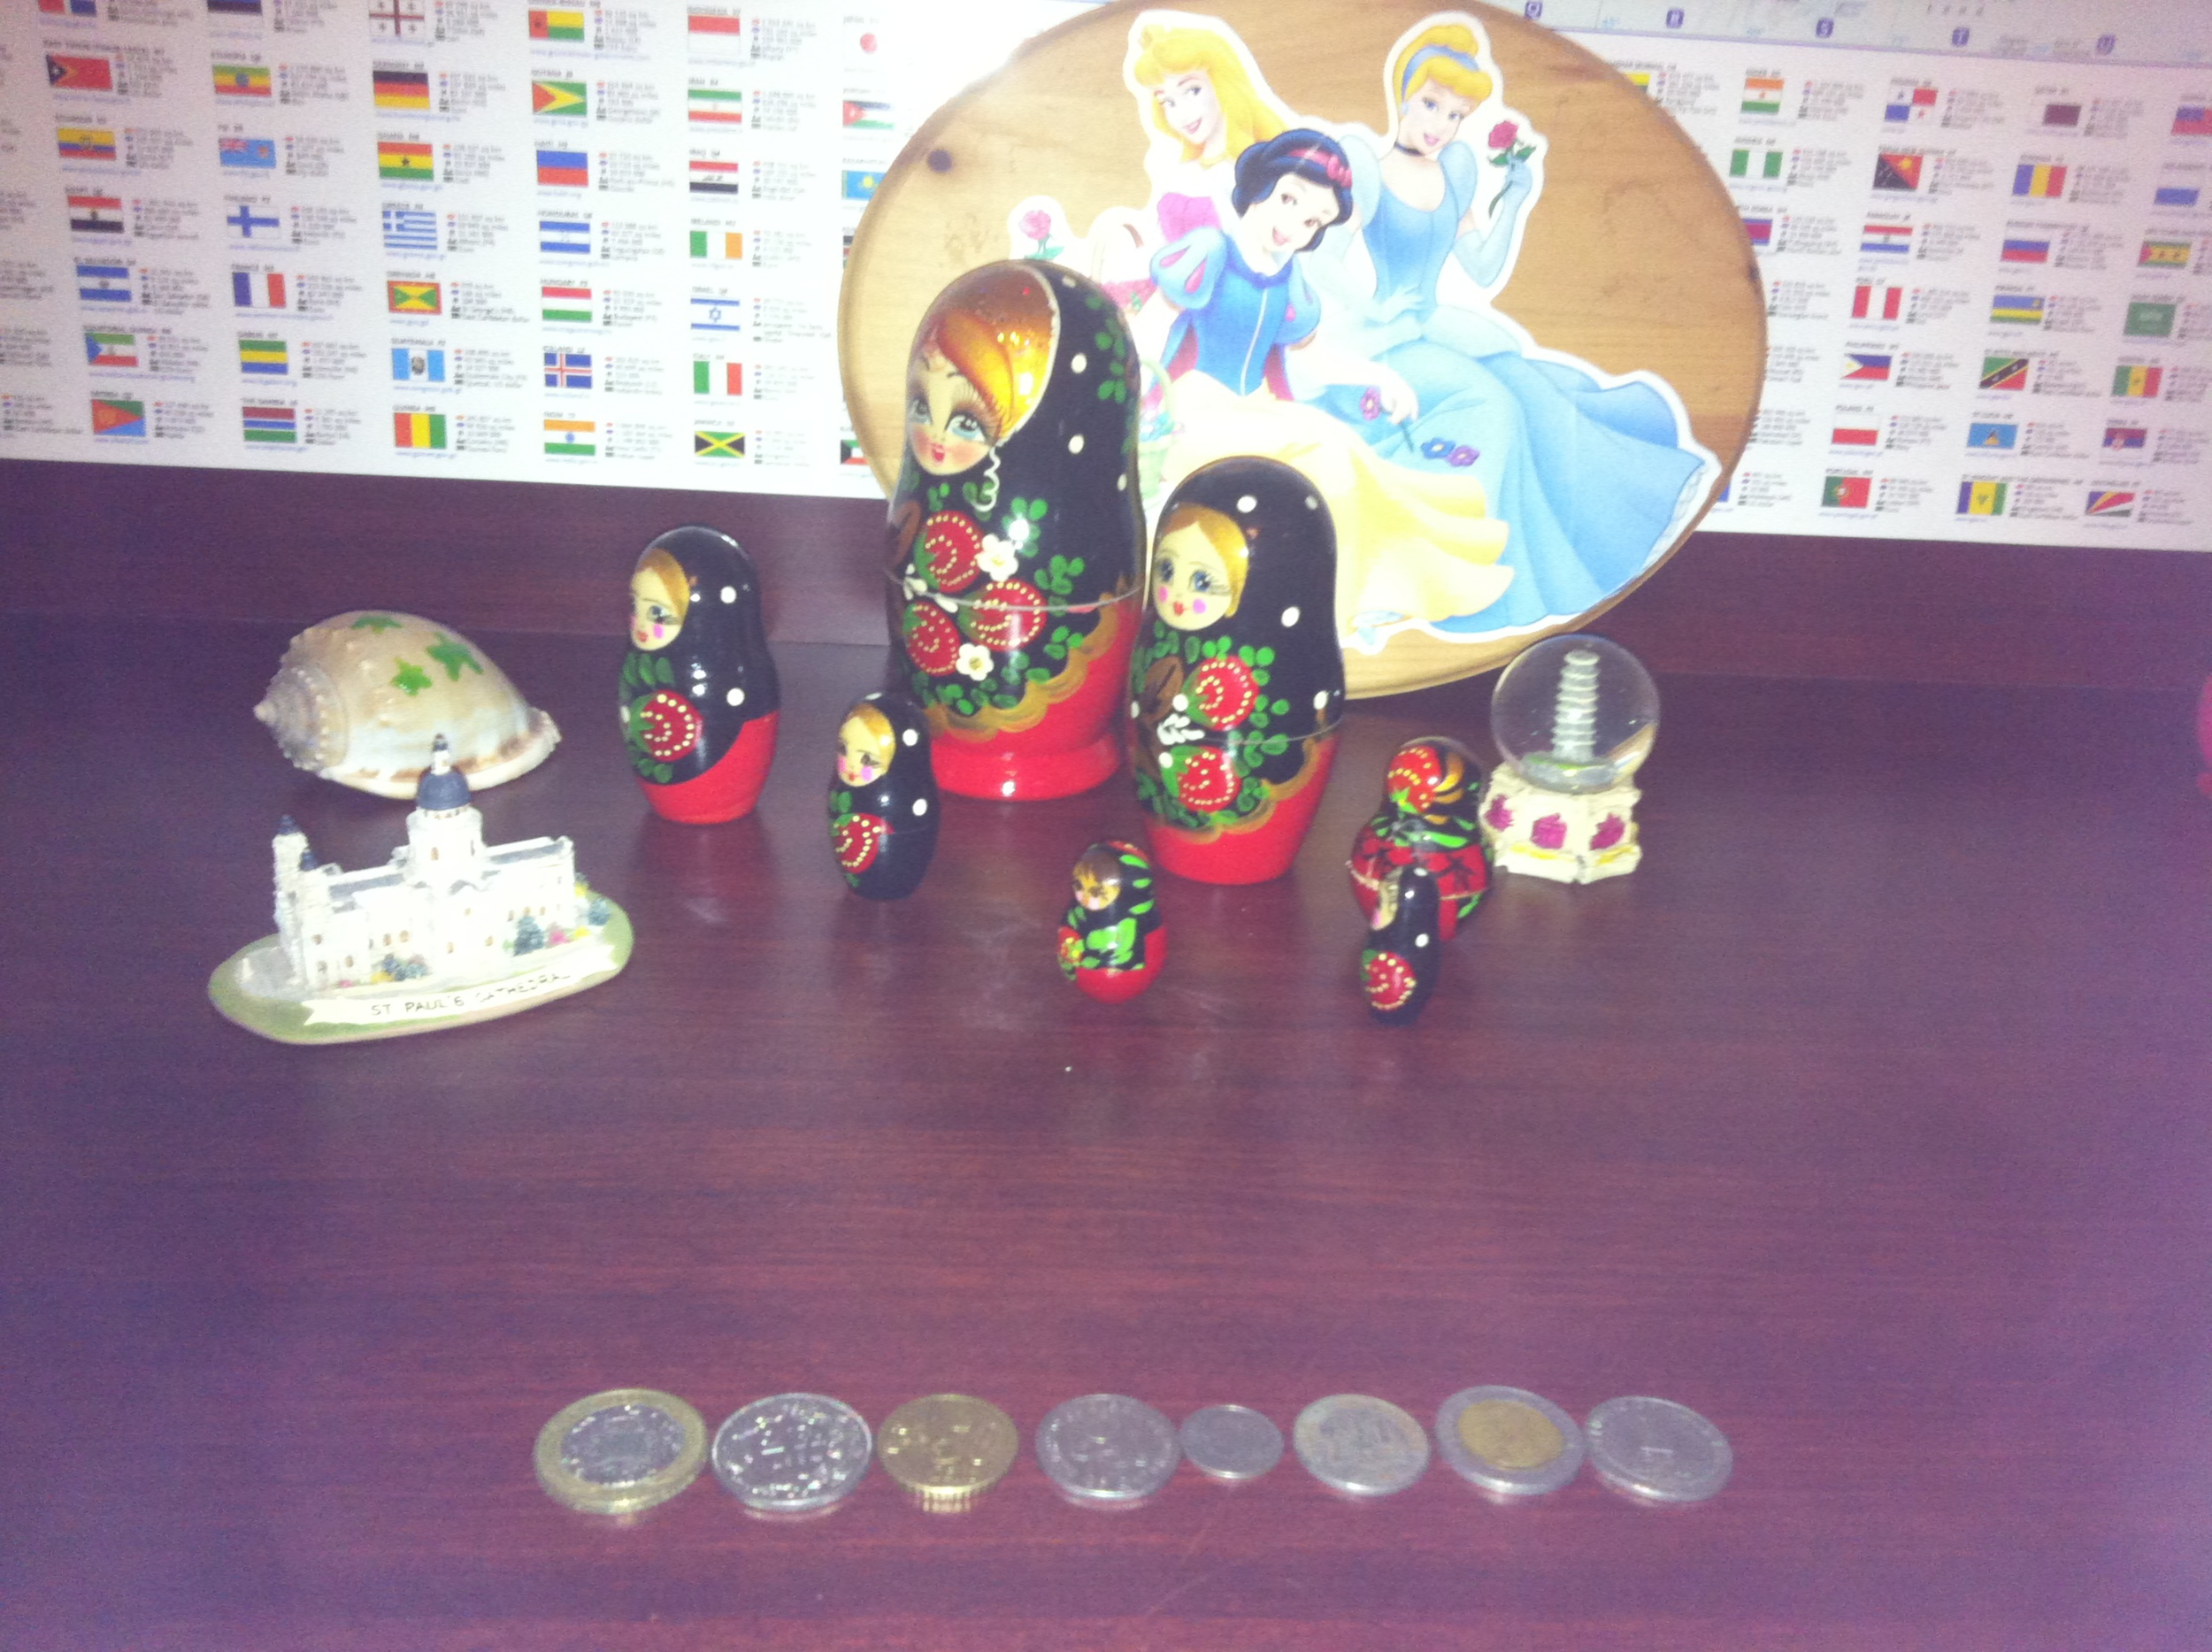 Kiddo's world coins laid out by world flag map, Disney princesses, Philippine conch, Russian matryoshka dolls, a Leaning Tower of Pisa globe and a mini St. Paul's Cathedral.